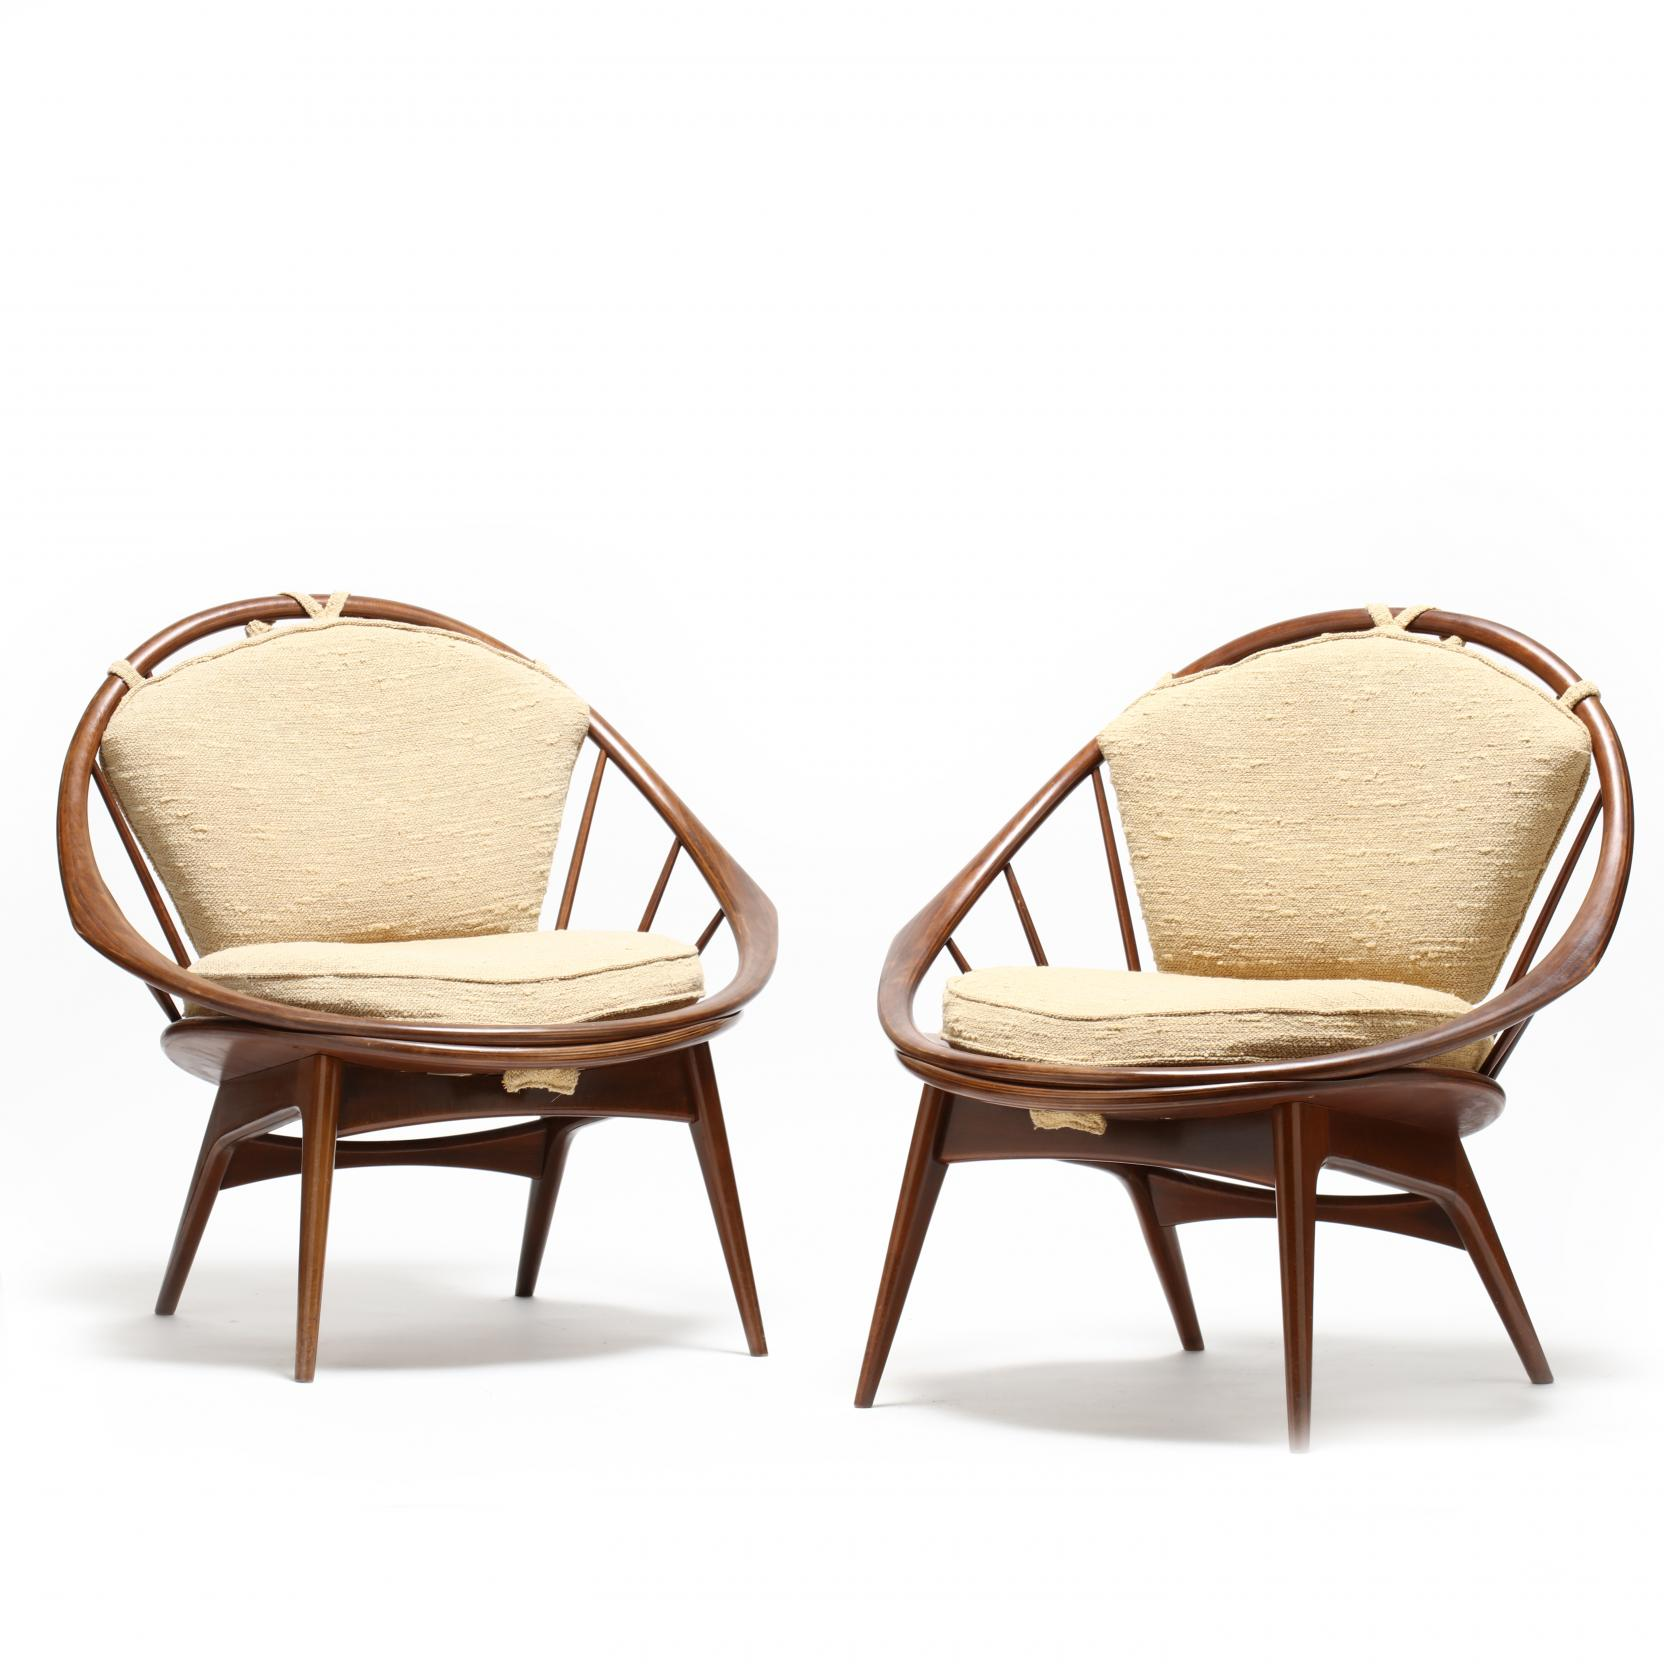 kofod-larsen-pair-of-hoop-chairs